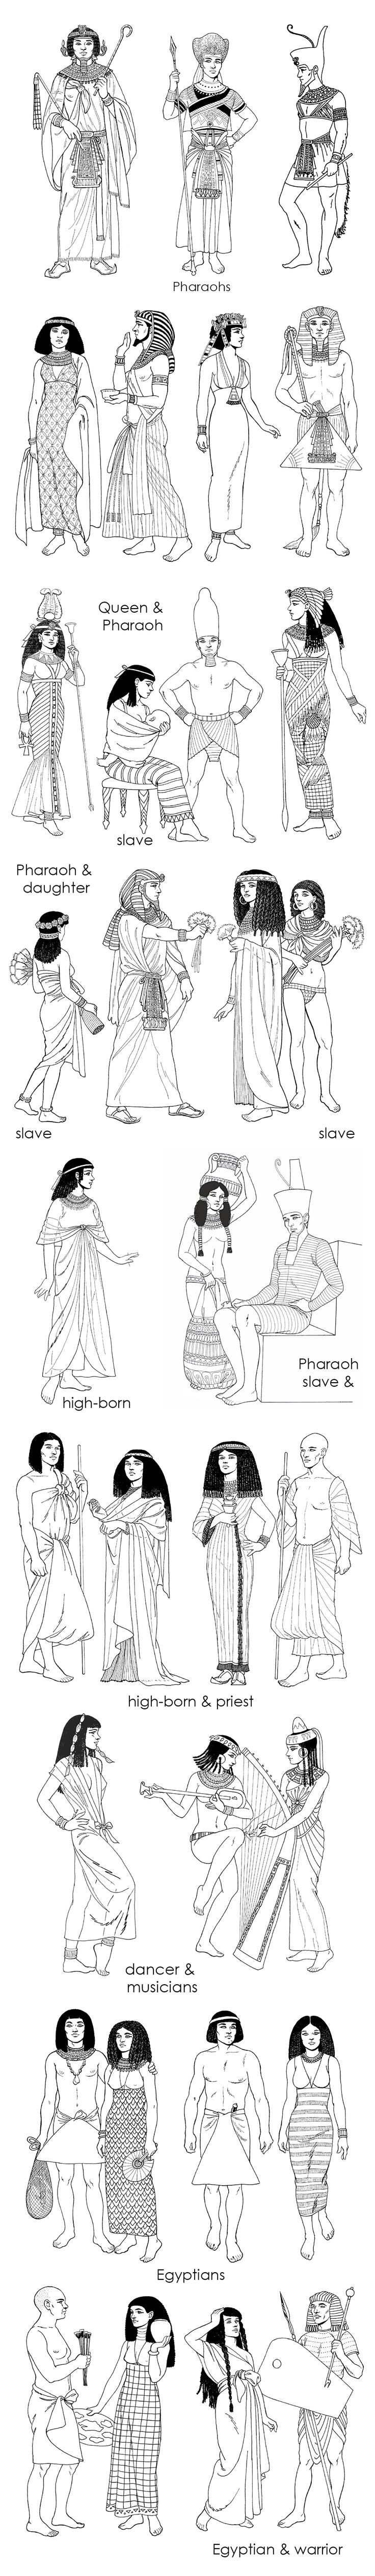 Pharaoh, queen, slave, egyptians, Egypt